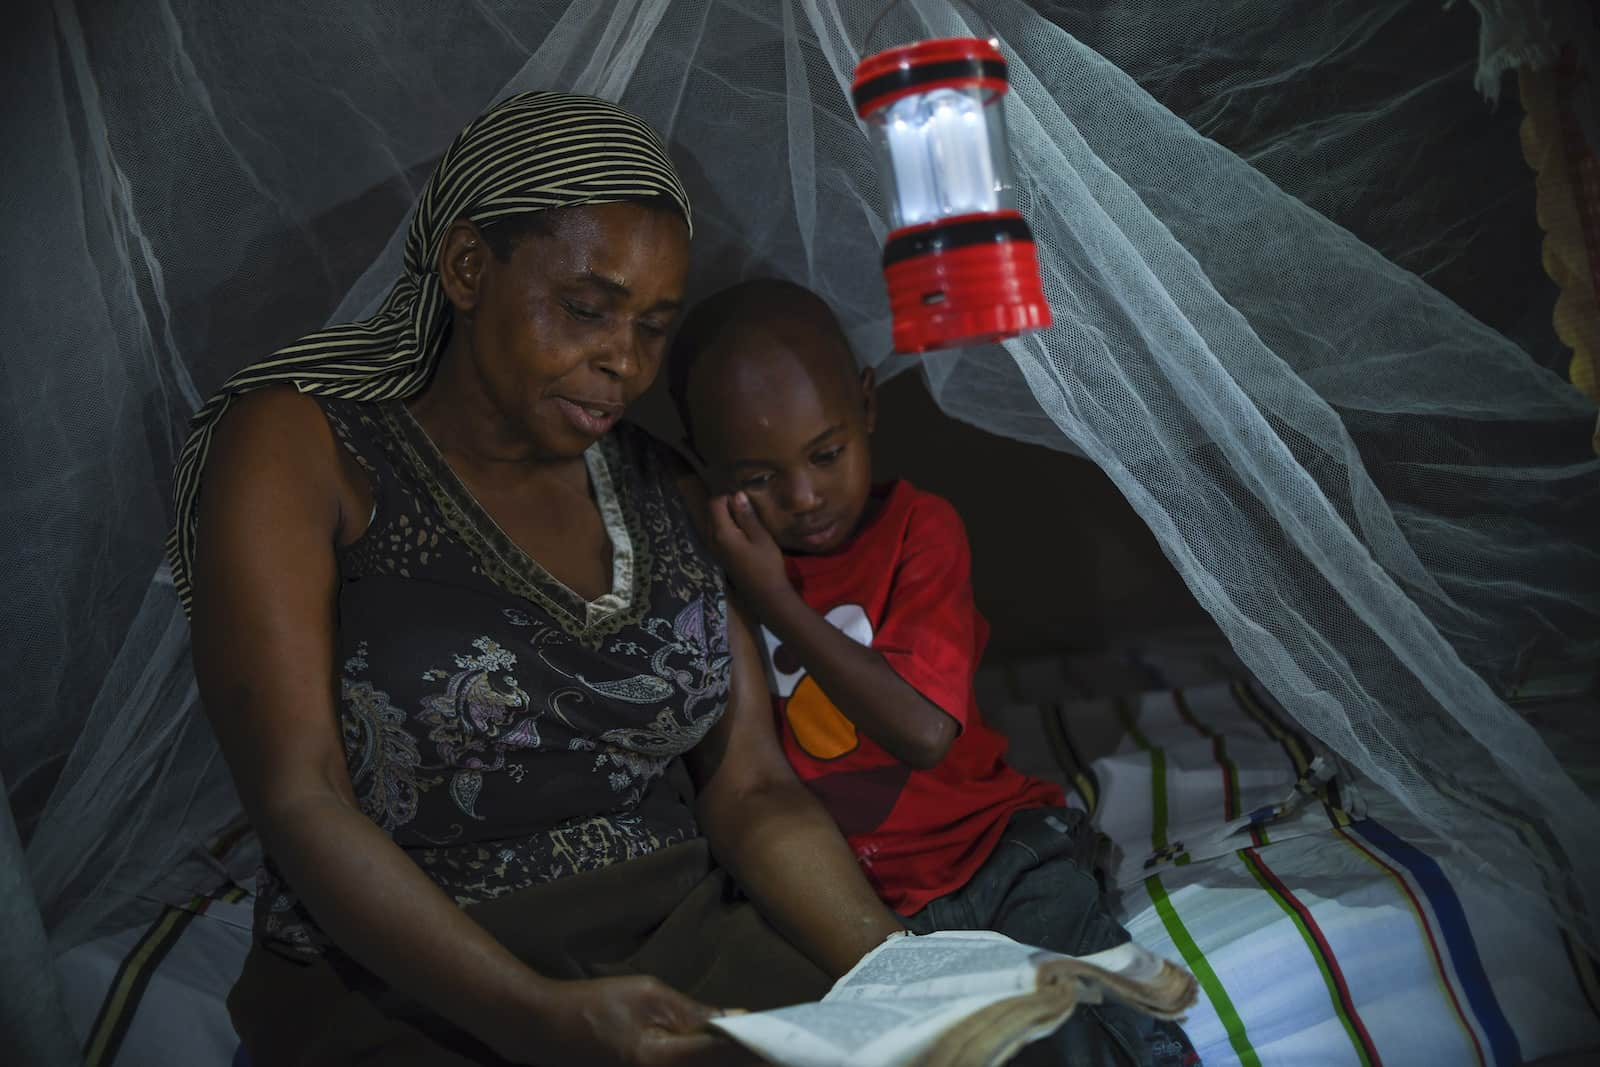 A woman and a boy sit on a bed with a mosquito net and lantern hanging over it, reading the Bible.